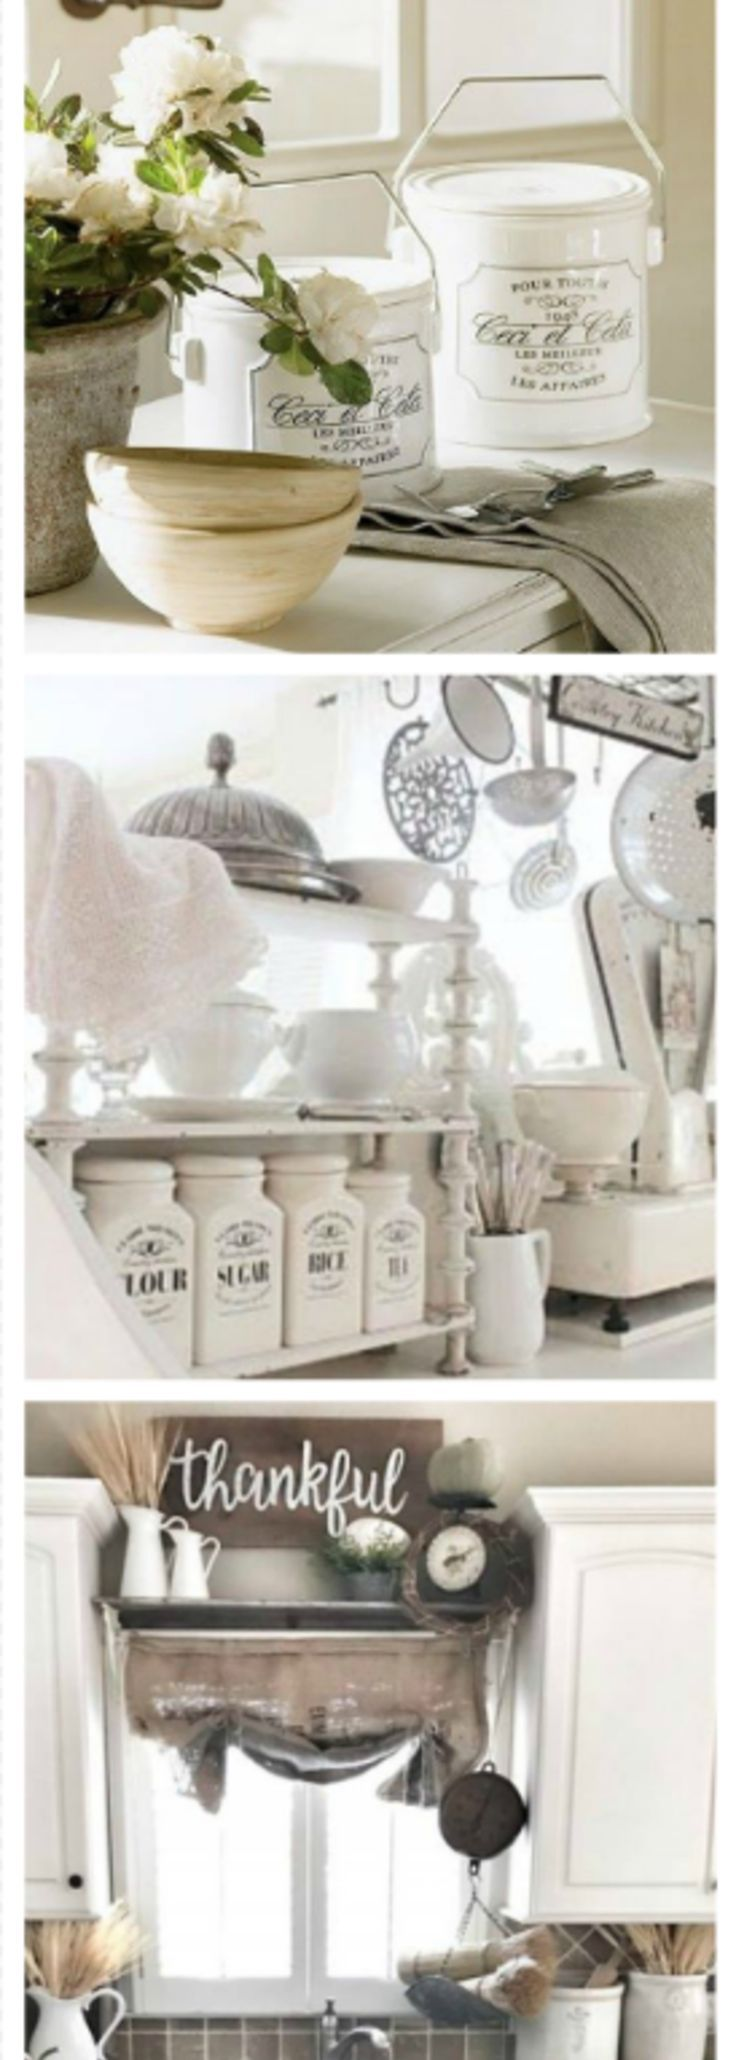 GORGEOUS white country kitchen ideas - perhaps farmhouse kitchen decor or maybe even shabby chic?